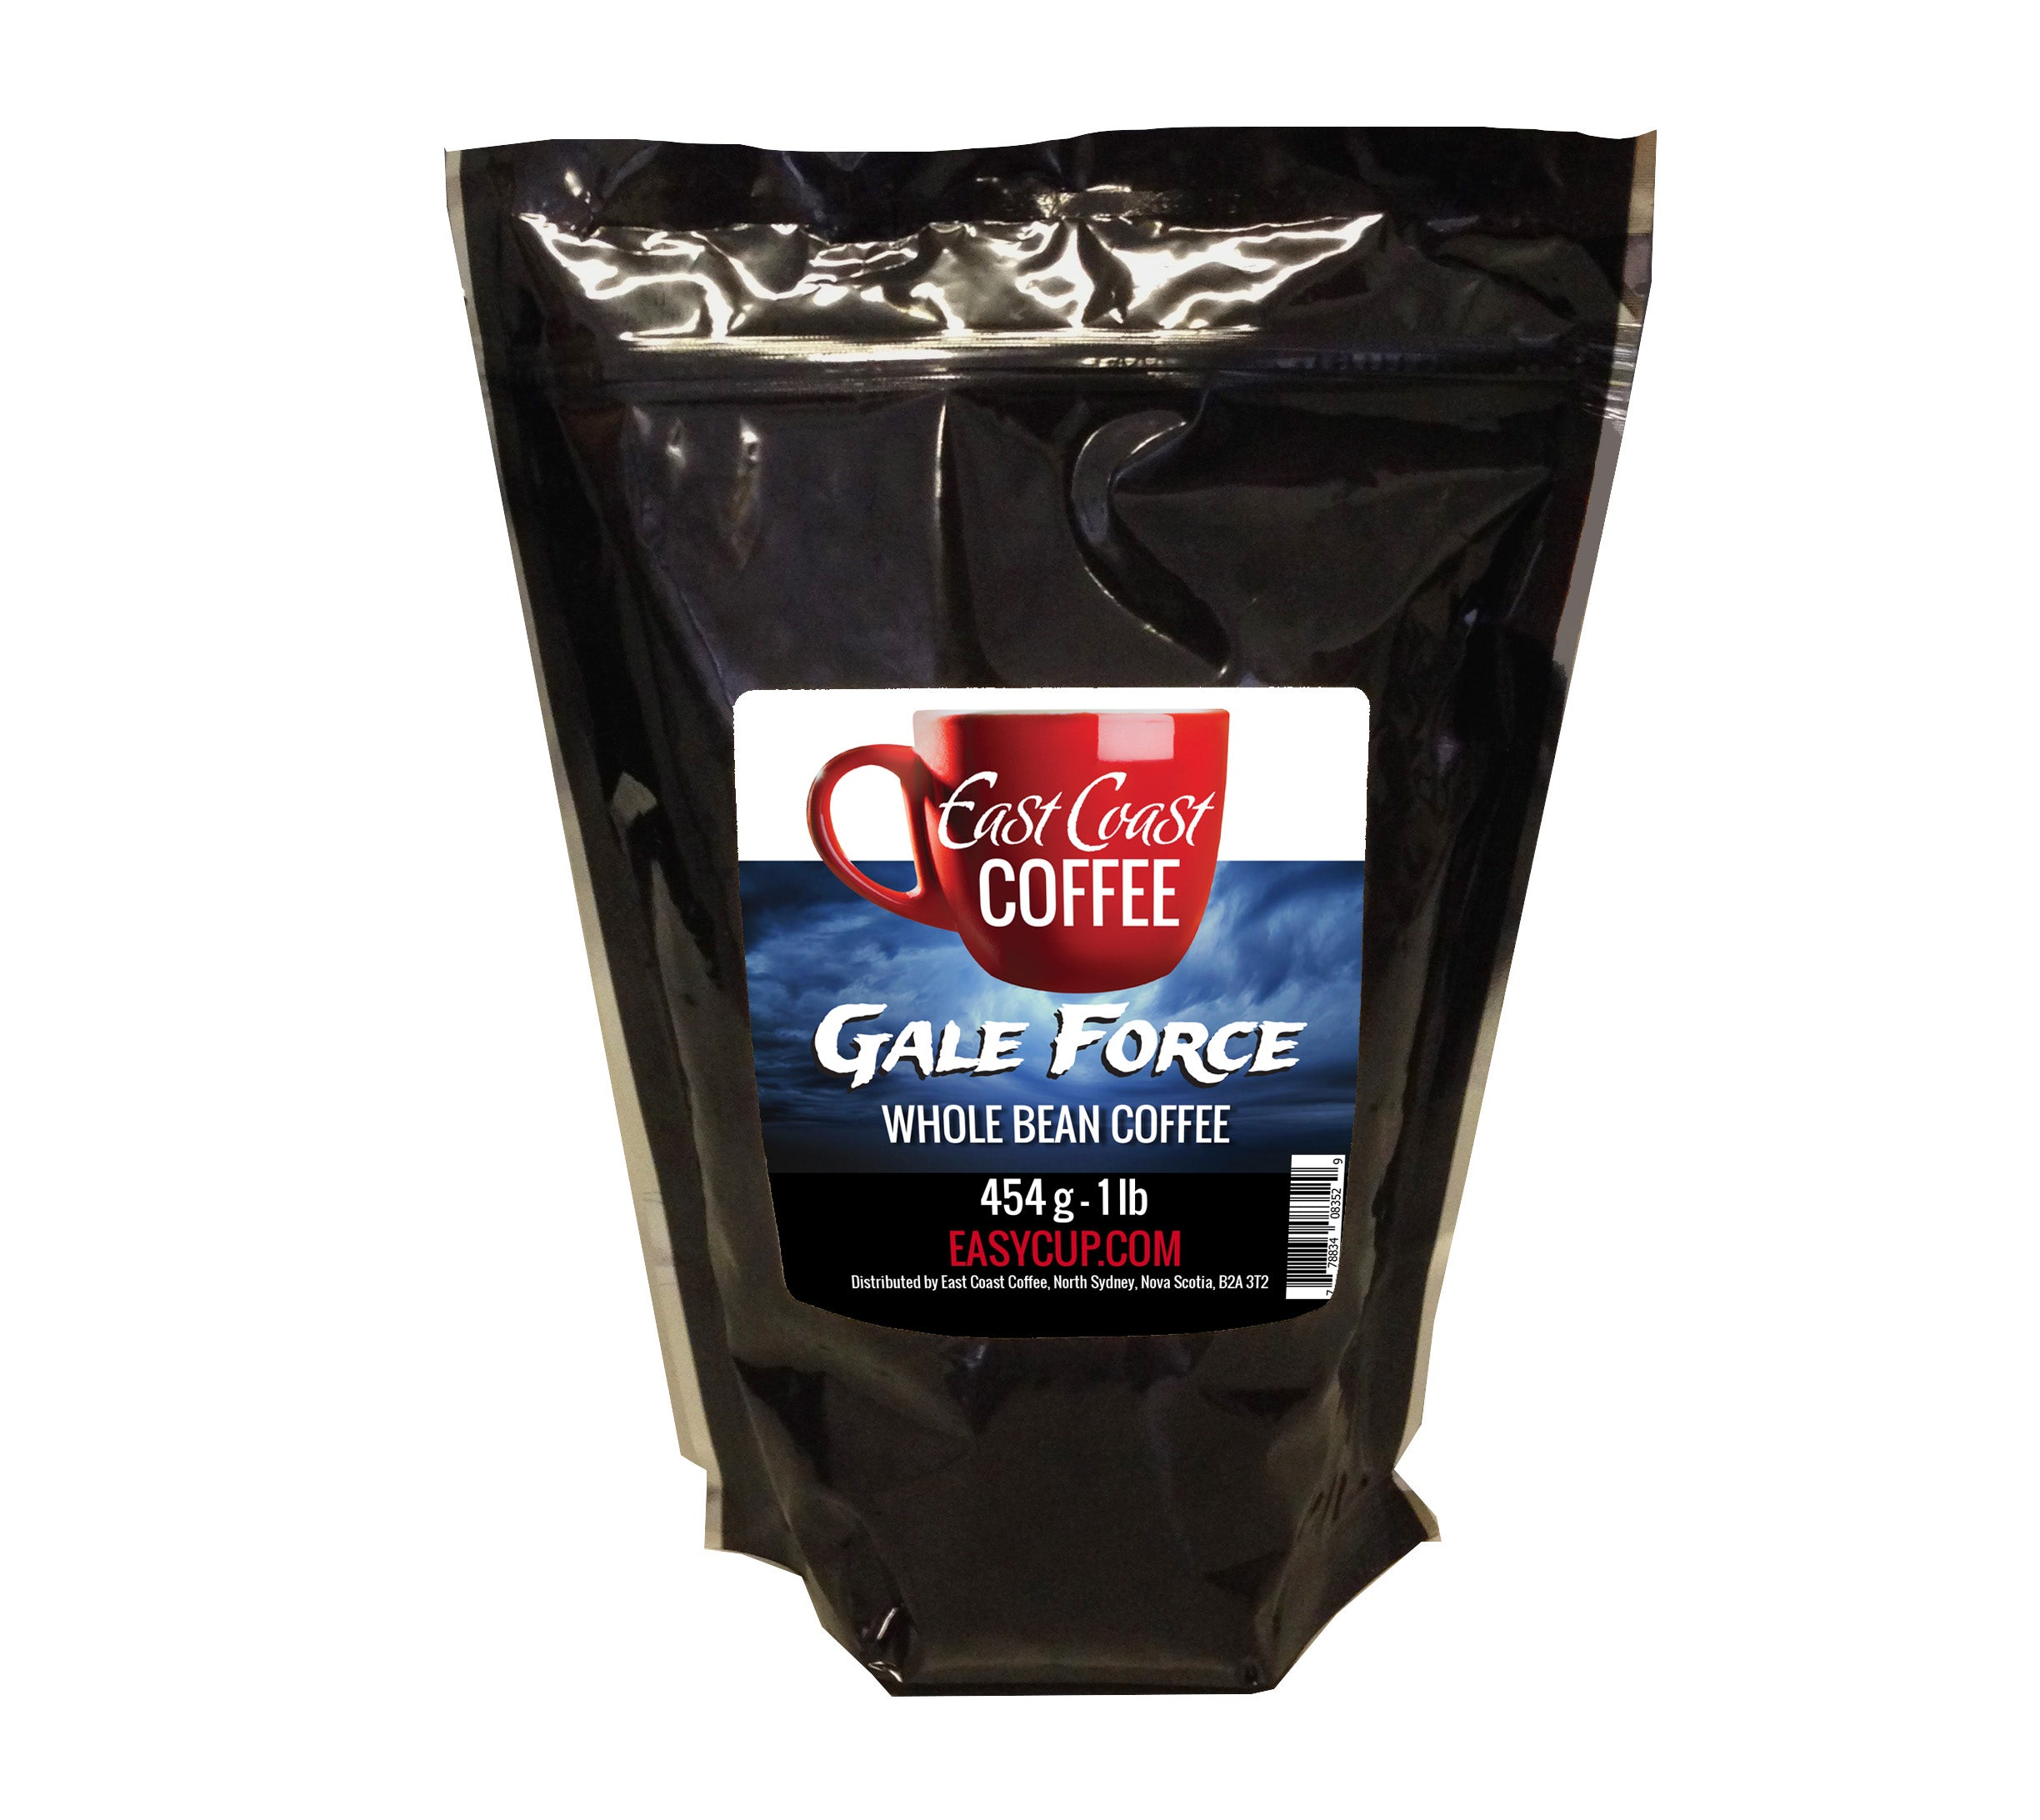 Terrific Gale Force Dark Roast Whole Bean Coffee 1Lb Bag Gmtry Best Dining Table And Chair Ideas Images Gmtryco